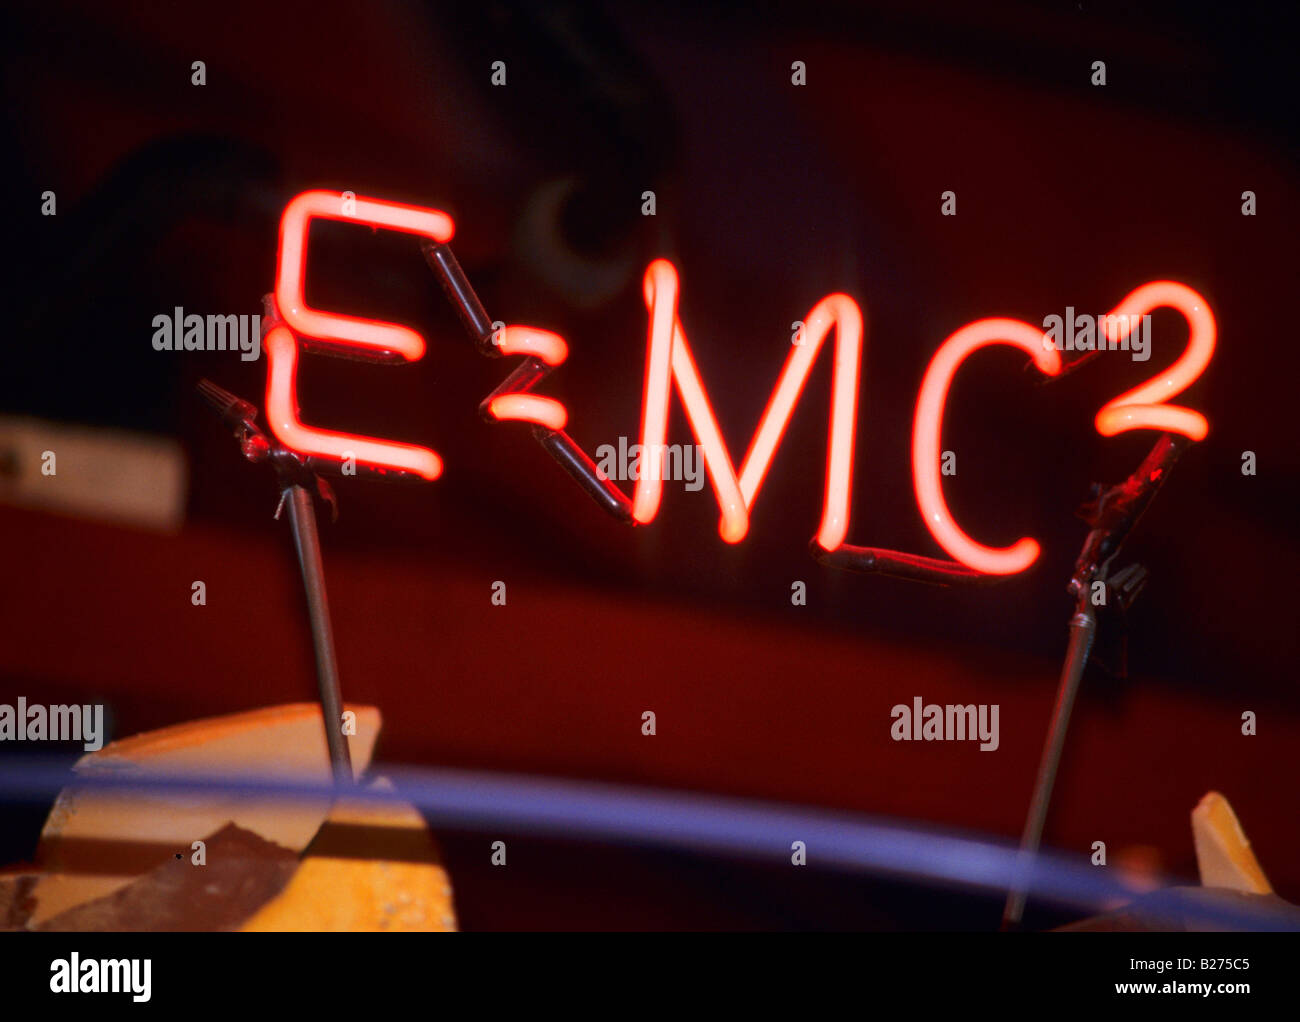 PHYSICS LAB DECORATED WITH EINSTEIN S EQUATION - Stock Image